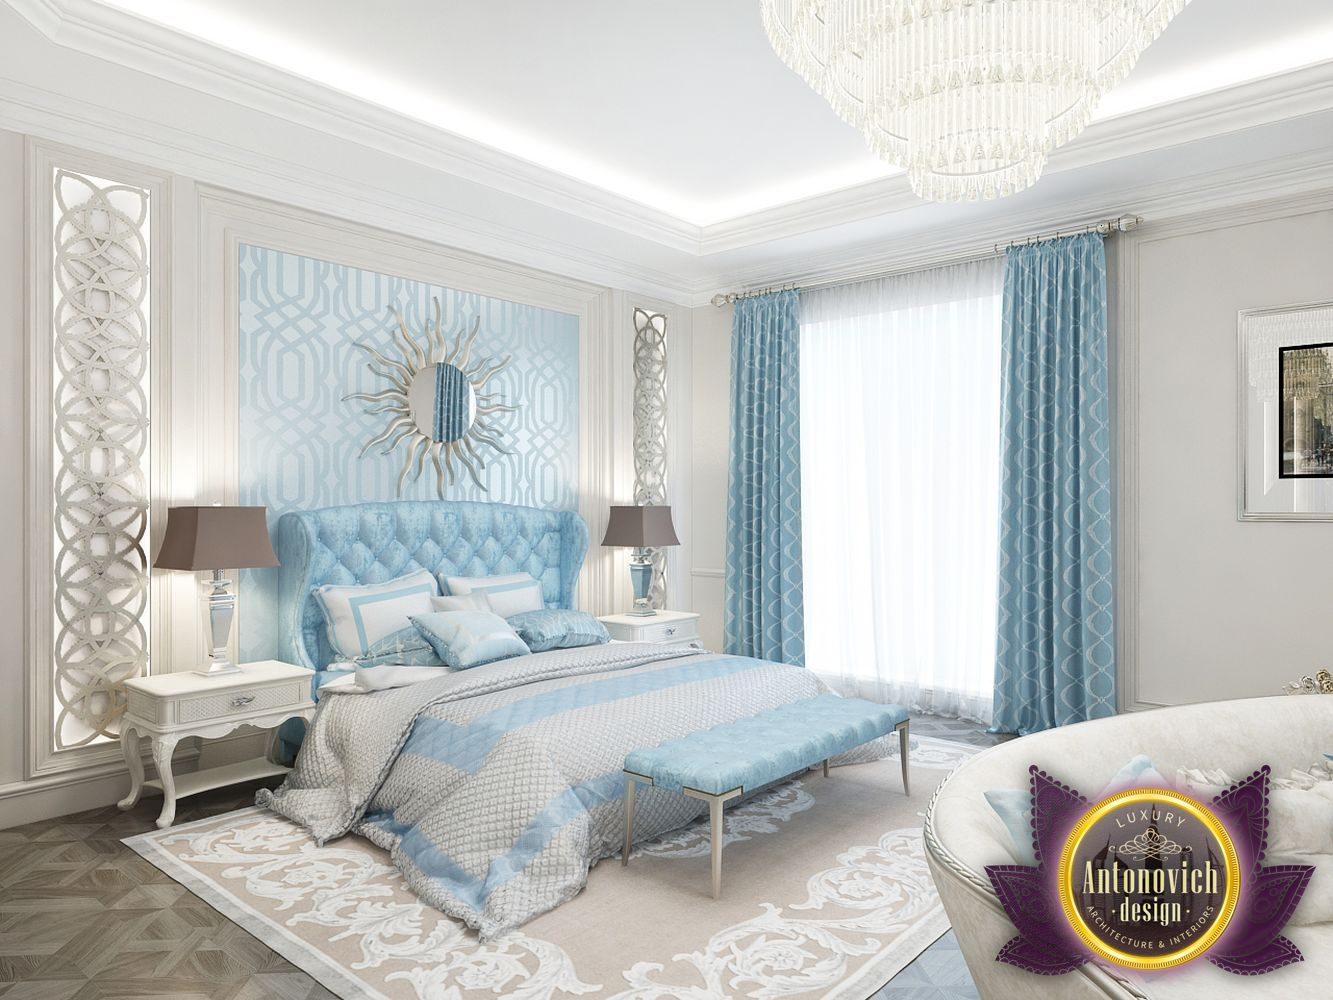 Kenyadesign master bedroom design in kenya by luxury for Bedroom designs in kenya